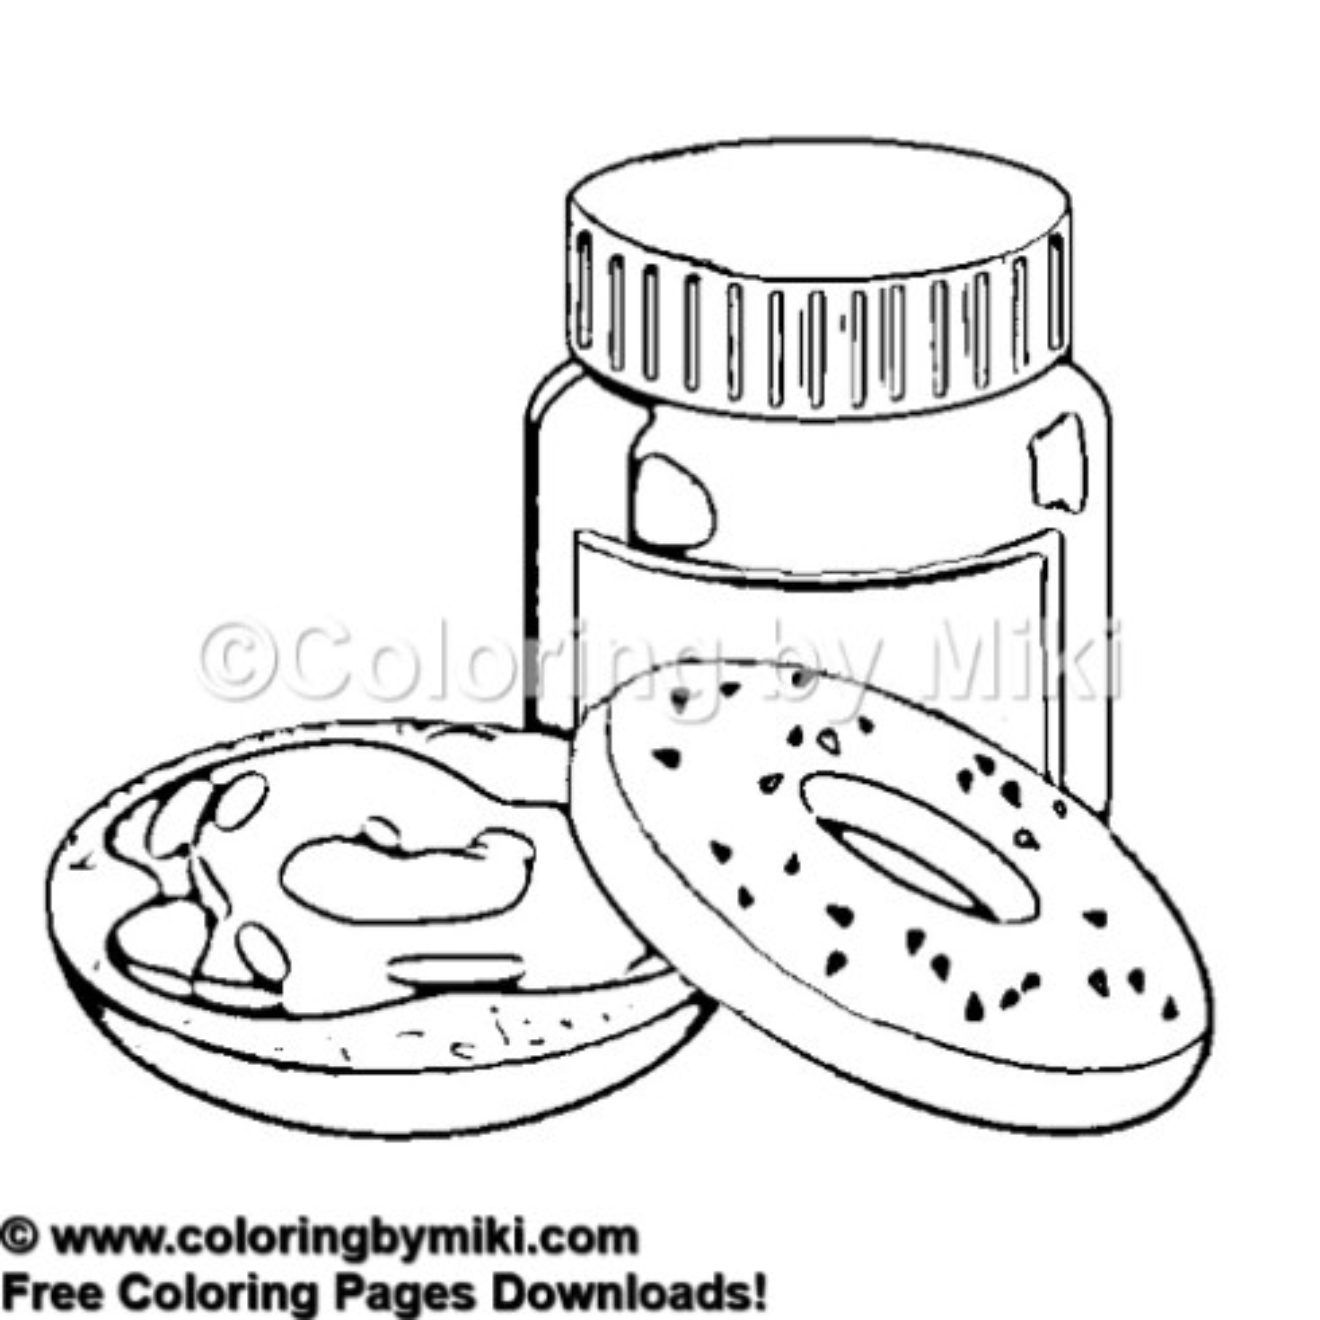 Breakfast Bagle Coloring Page 565 Freeprintable Coloring